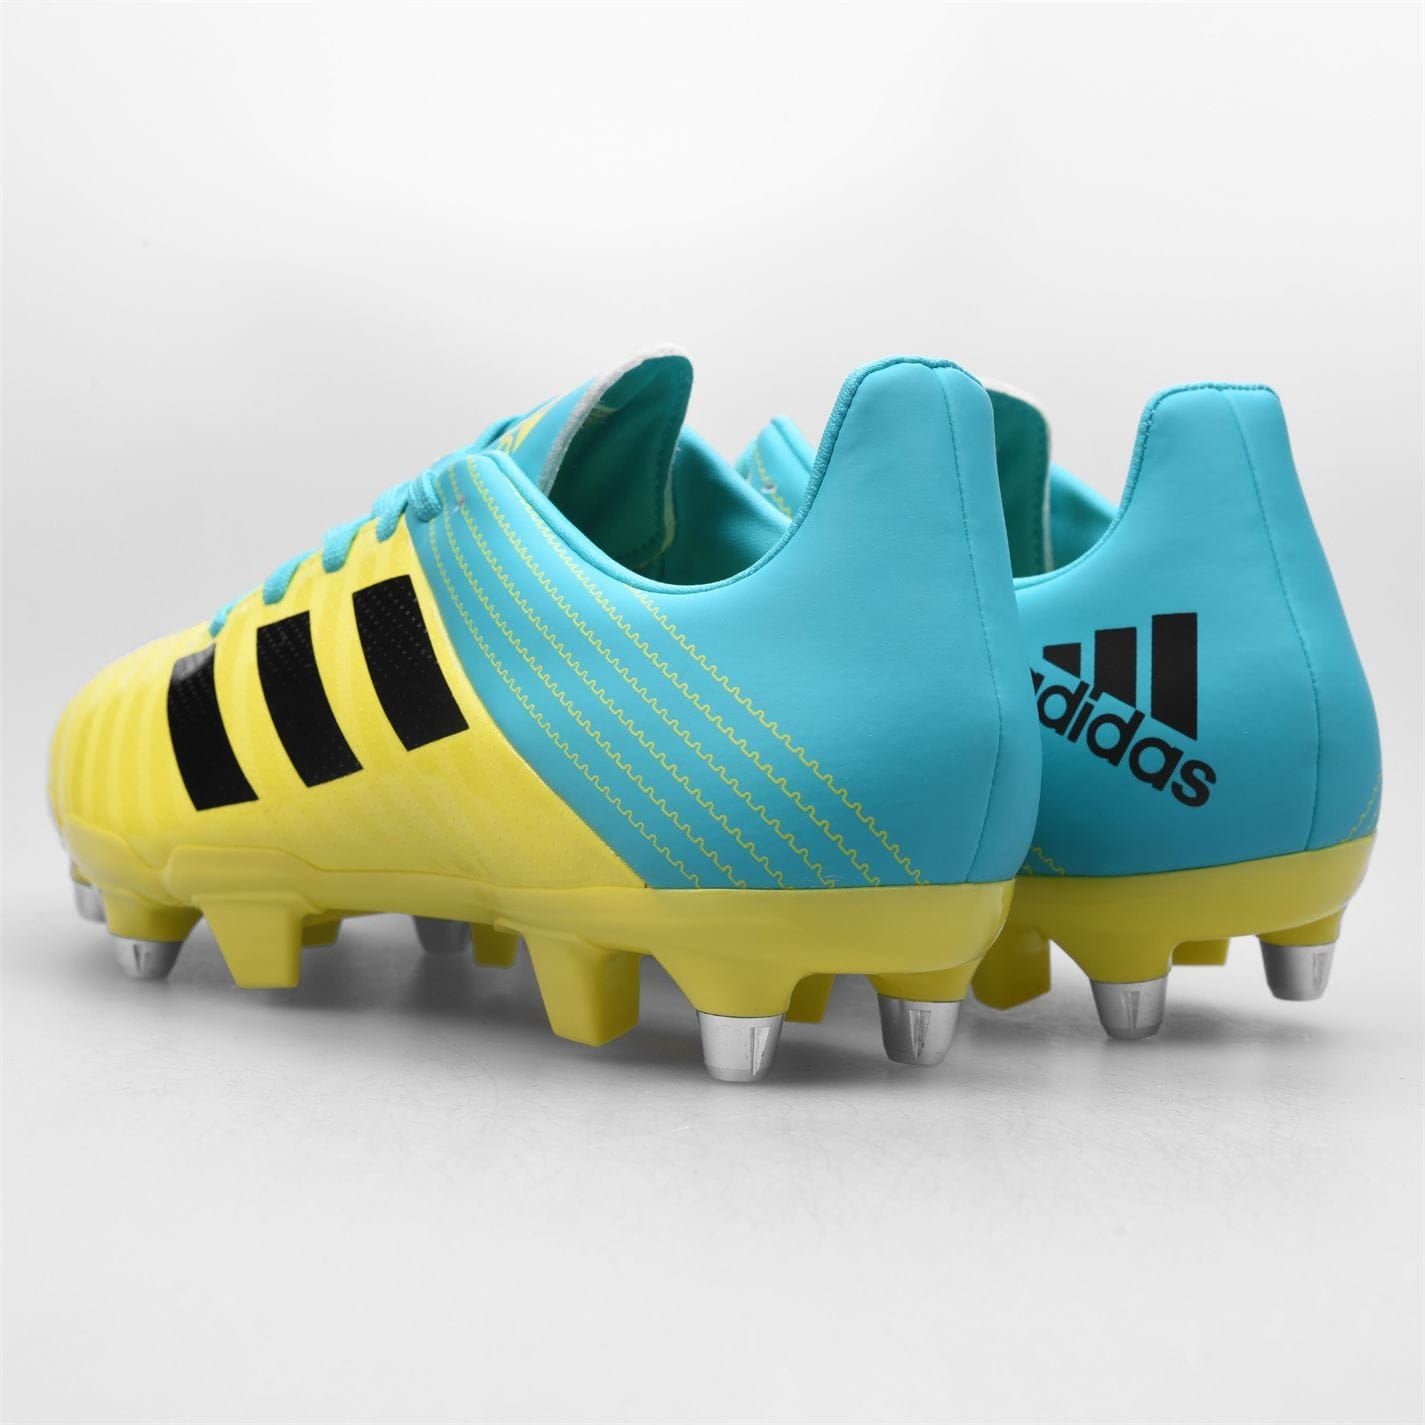 adidas Malice Soft Ground Rugby Boots Mens Yellow/Aqua Football Cleats Footwear